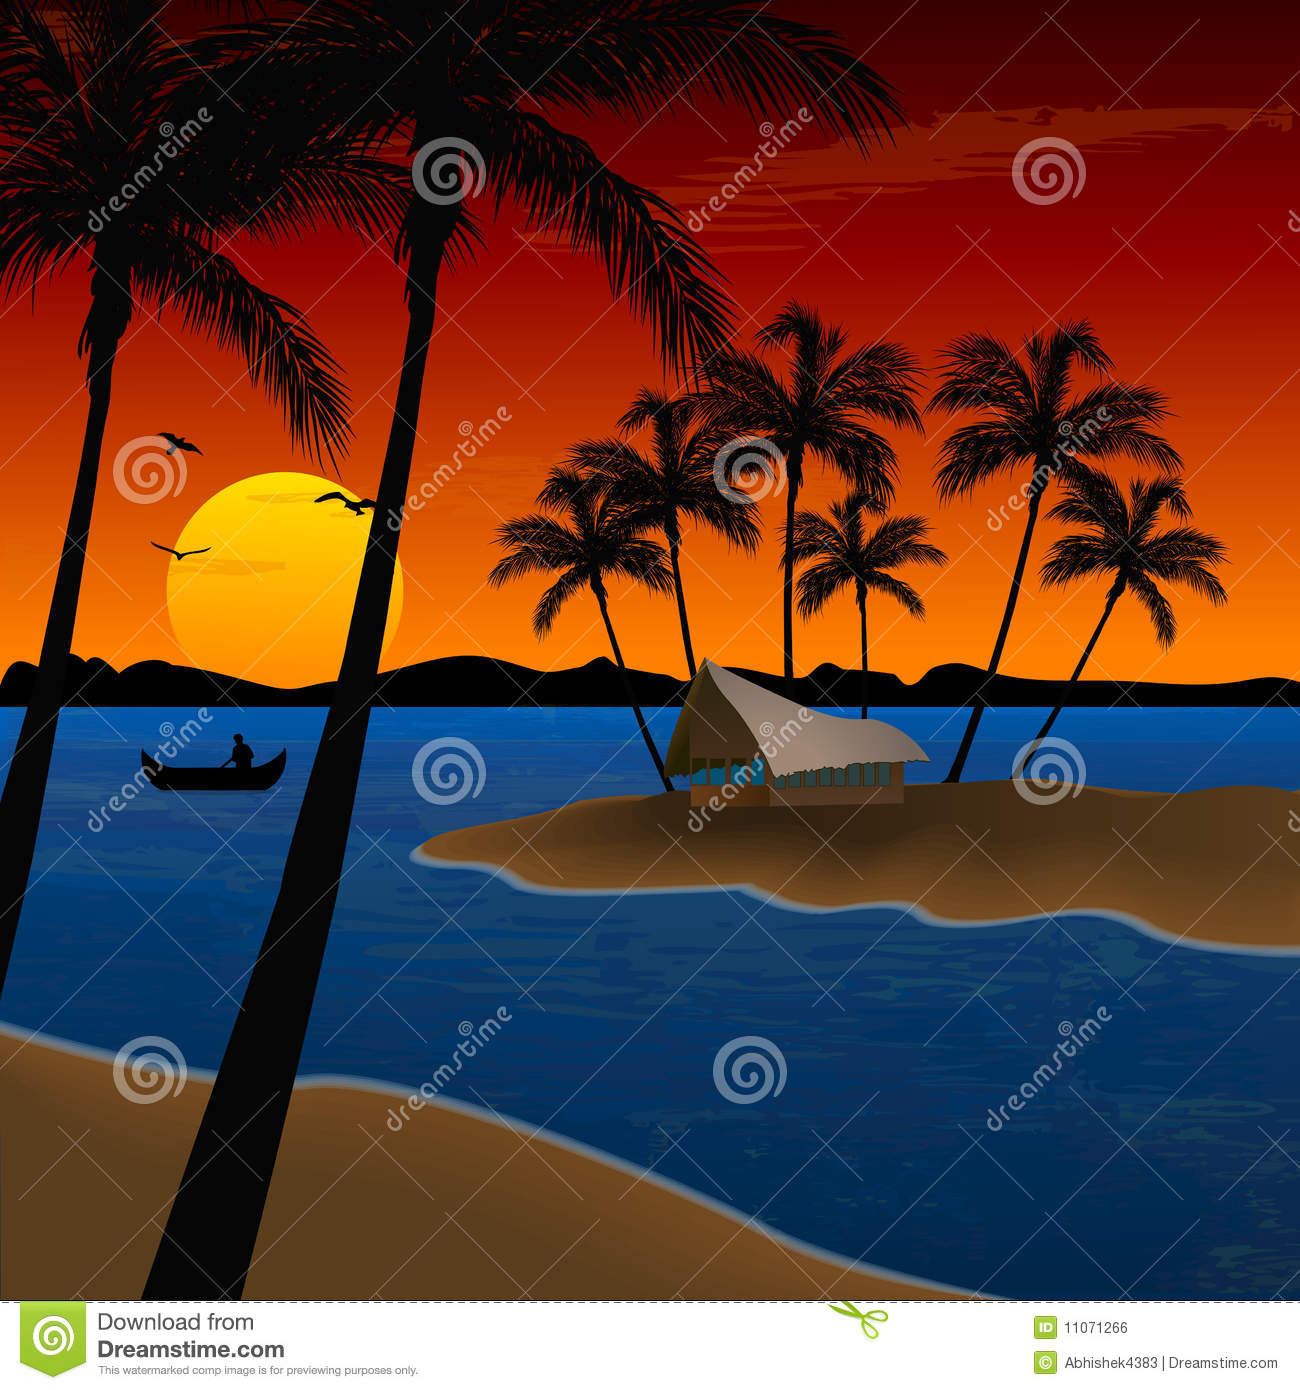 Landscape of beach with coconut trees, hut